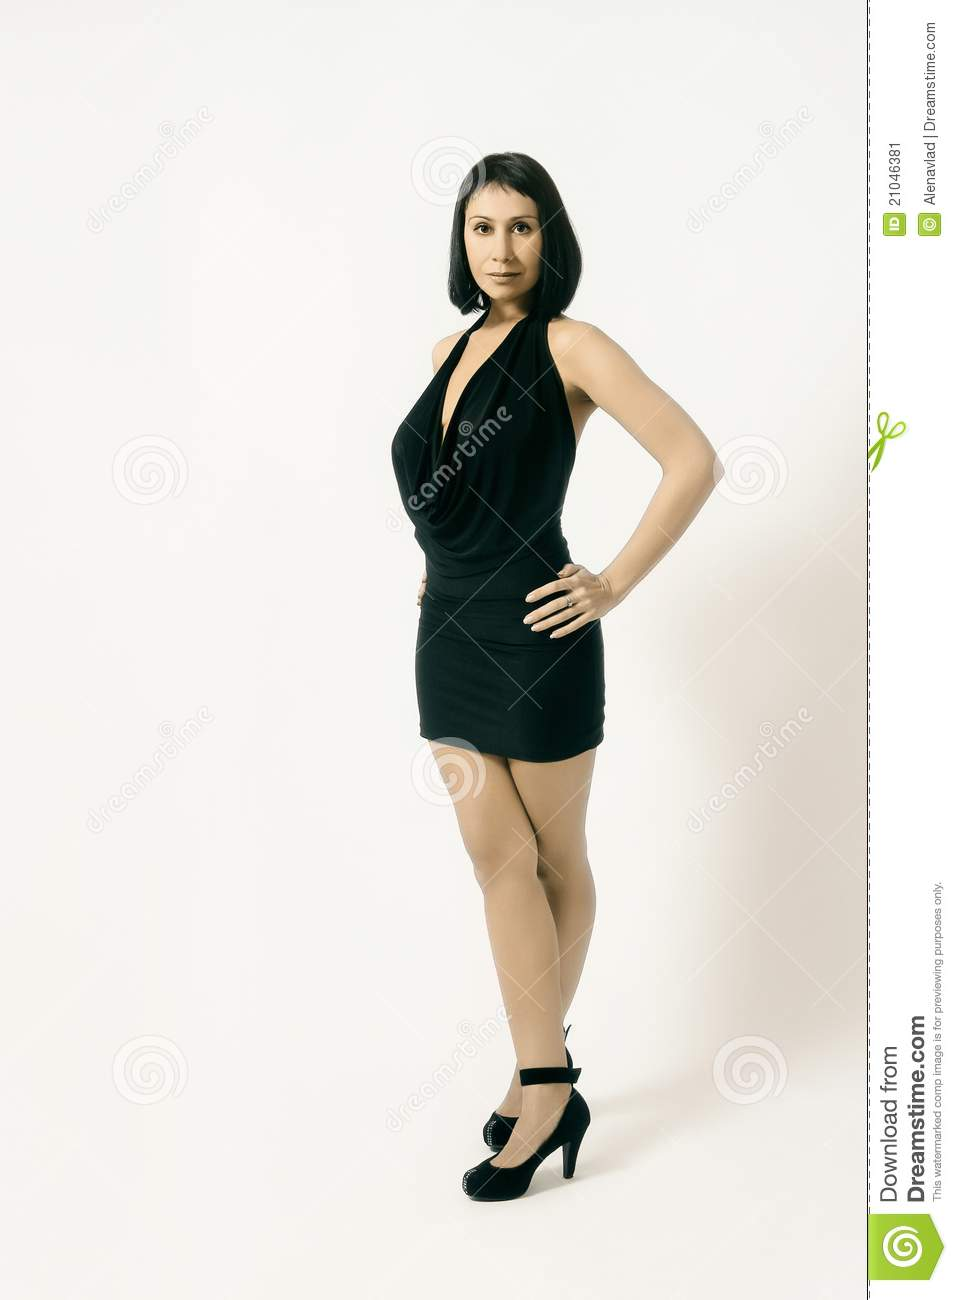 Elegant modern woman in black small dress with black hair and shoes